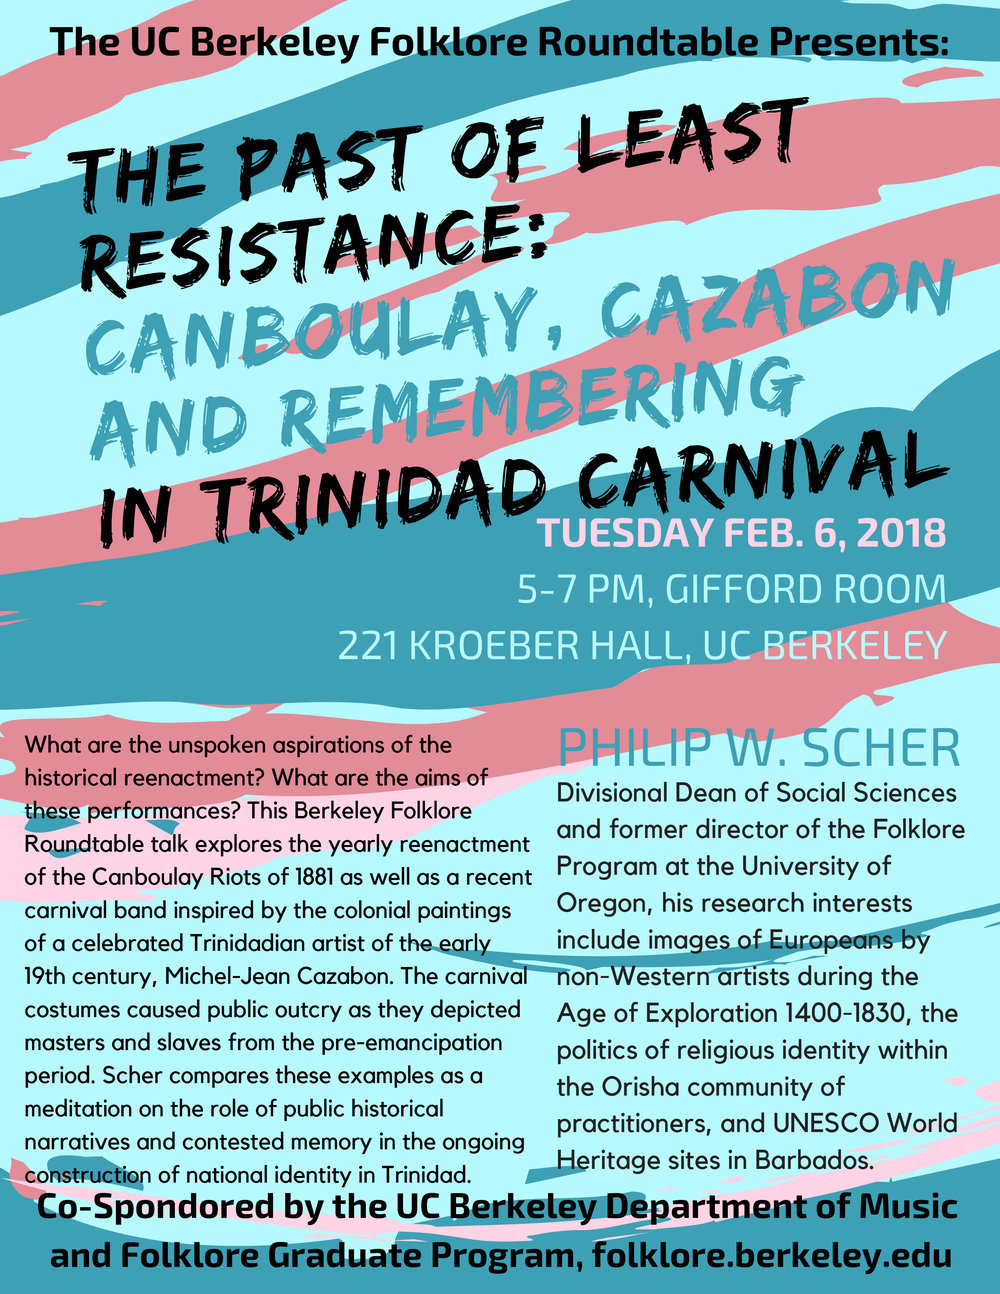 The UC Berkeley Folklore Roundtable presents:  THE PAST OF LEAST RESISTANCE: CANBOULAY, CAZABON AND REMEMBERING IN TRINIDAD CARNIVAL  Tuesday 6 February 2018 5:00-7:00 PM 221 Kroeber Hall (Gifford Room)  Professor Philip W. Scher, Divisional Dean of Social Sciences, University of Oregon  What are the unspoken aspirations of the historical reenactment? What are the aims of these performances? This Berkeley Folklore Roundtable talk explores the yearly reenactment of the Canboulay Riots of 1881 as well as a recent carnival band inspired by the colonial paintings of a celebrated Trinidadian artist of the early 19th century, Michel-Jean Cazabon. The carnival costumes caused public outcry as they depicted masters and slaves from the pre-emancipation period. Scher compares these examples as a meditation on the role of public historical narratives and contested memory in the ongoing construction of national identity in Trinidad.  Dr. Philip Scher is Divisional Dean of Social Sciences and former director of the Folklore Program at the University of Oregon. His research interests include images of Europeans by non-Western artists during the Age of Exploration 1400-1830, the politics of religious identity within the Orisha community of practitioners, and UNESCO World Heritage sites in Barbados.   Co-Sponsored by the Department of Music and Folklore Graduate Program Questions? ucbfolklore@berkeley.edu